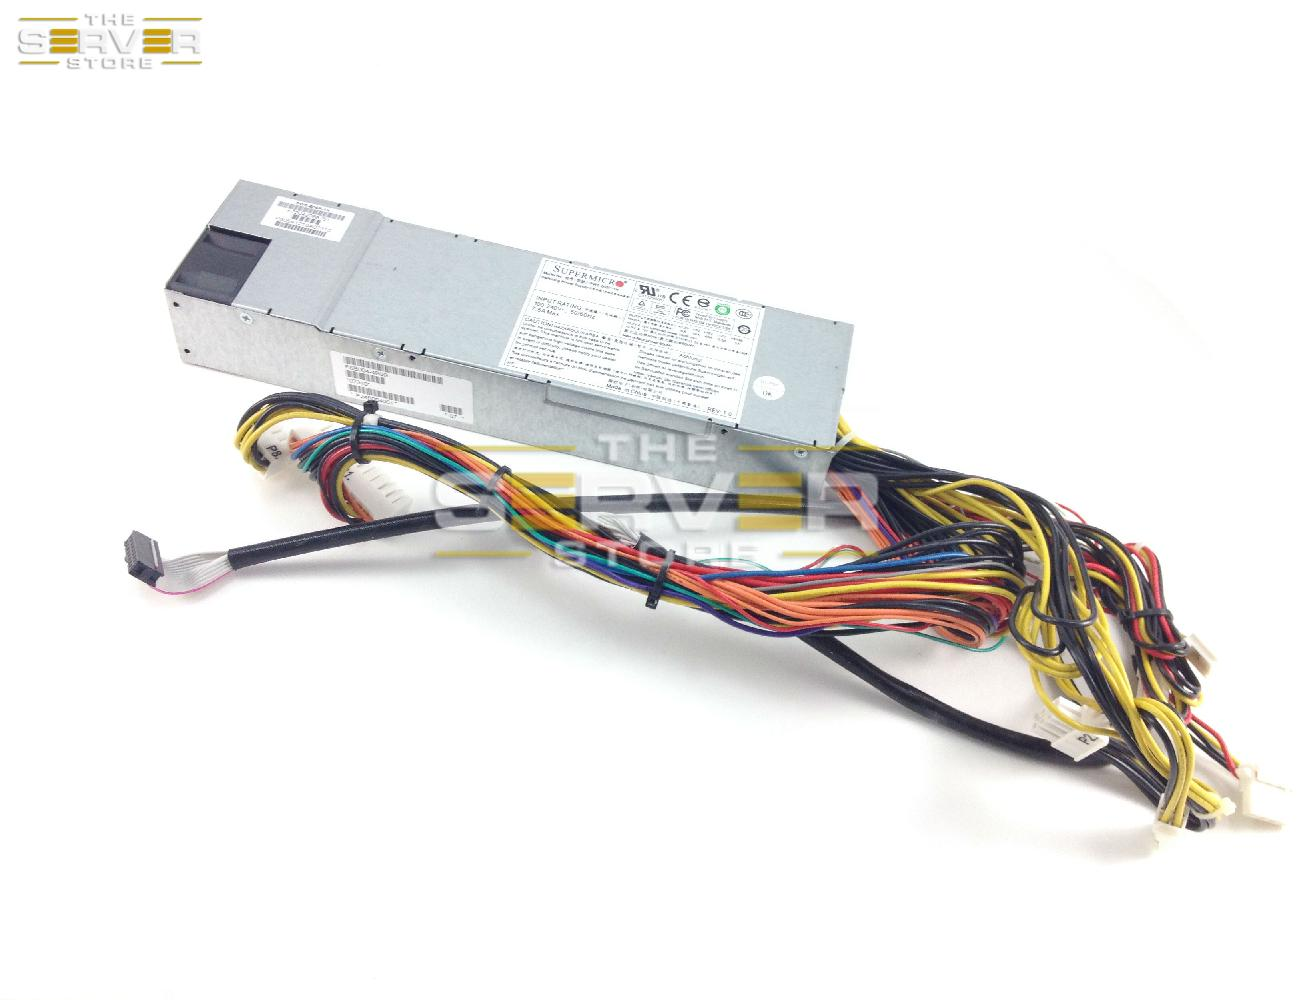 Supermicro PWS-561-1H20 560W 1U Power Supply